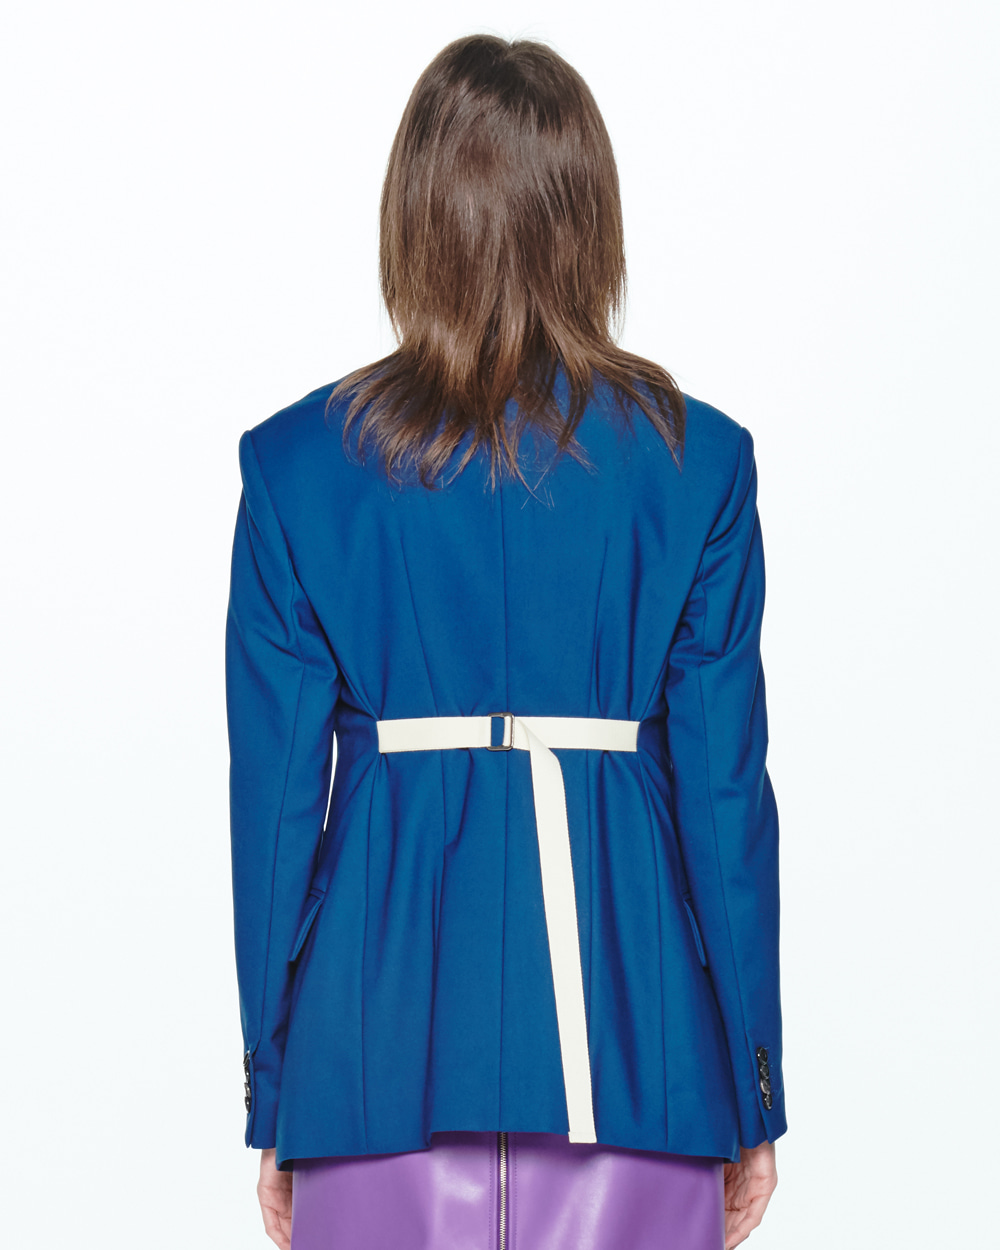 PF20 BELTED-BACK SINGLE JACKET